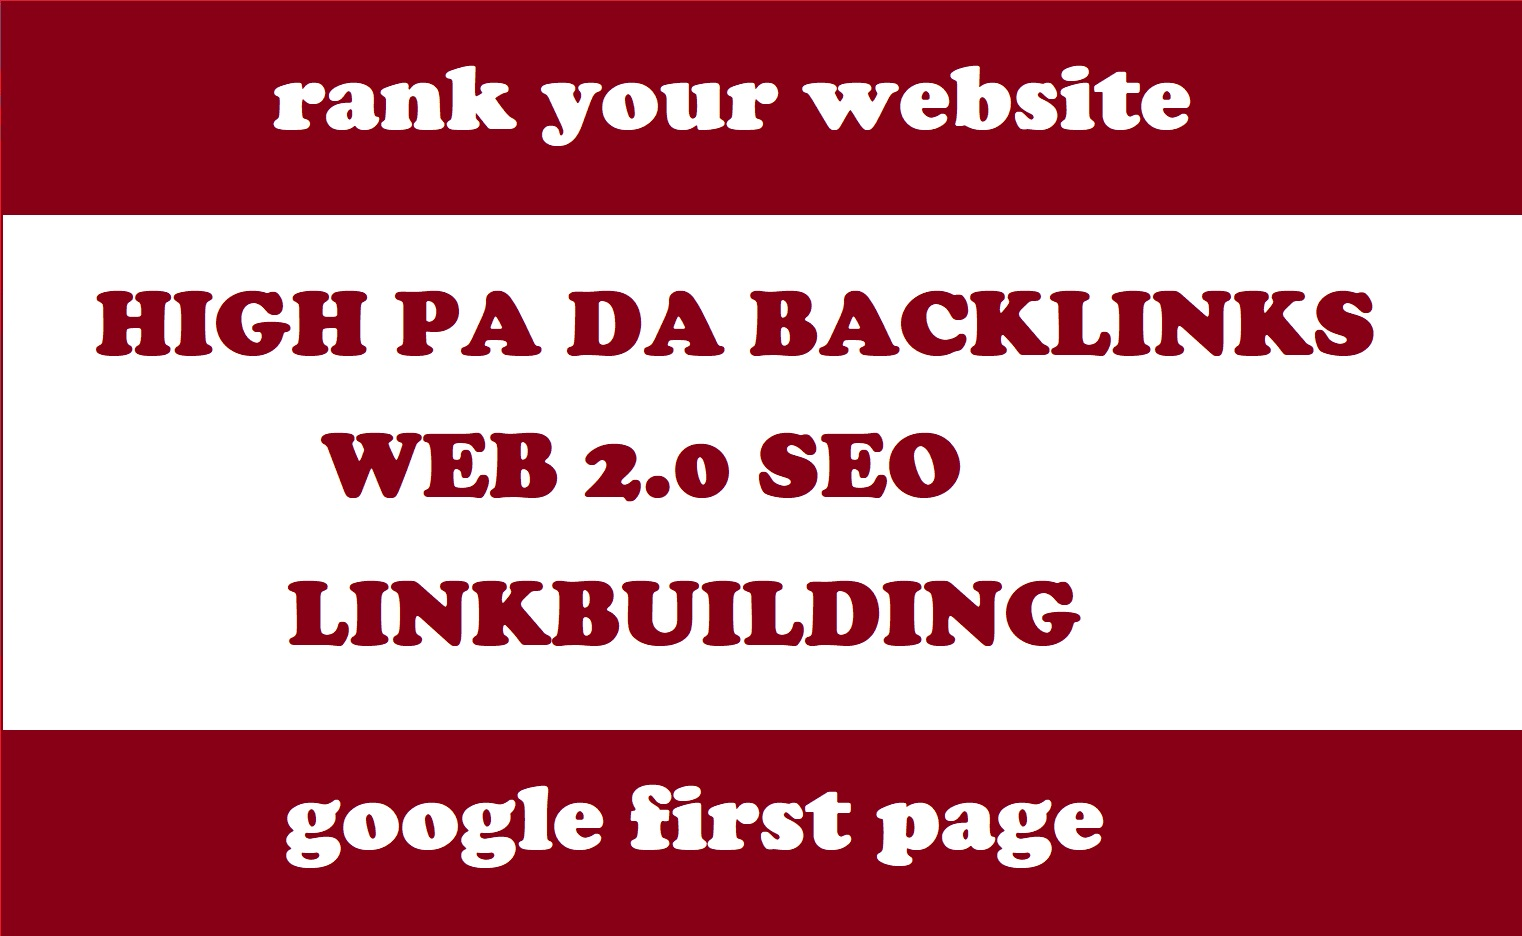 Get 30 high PA DA web 2.0 backlinks for your website 100% manually created